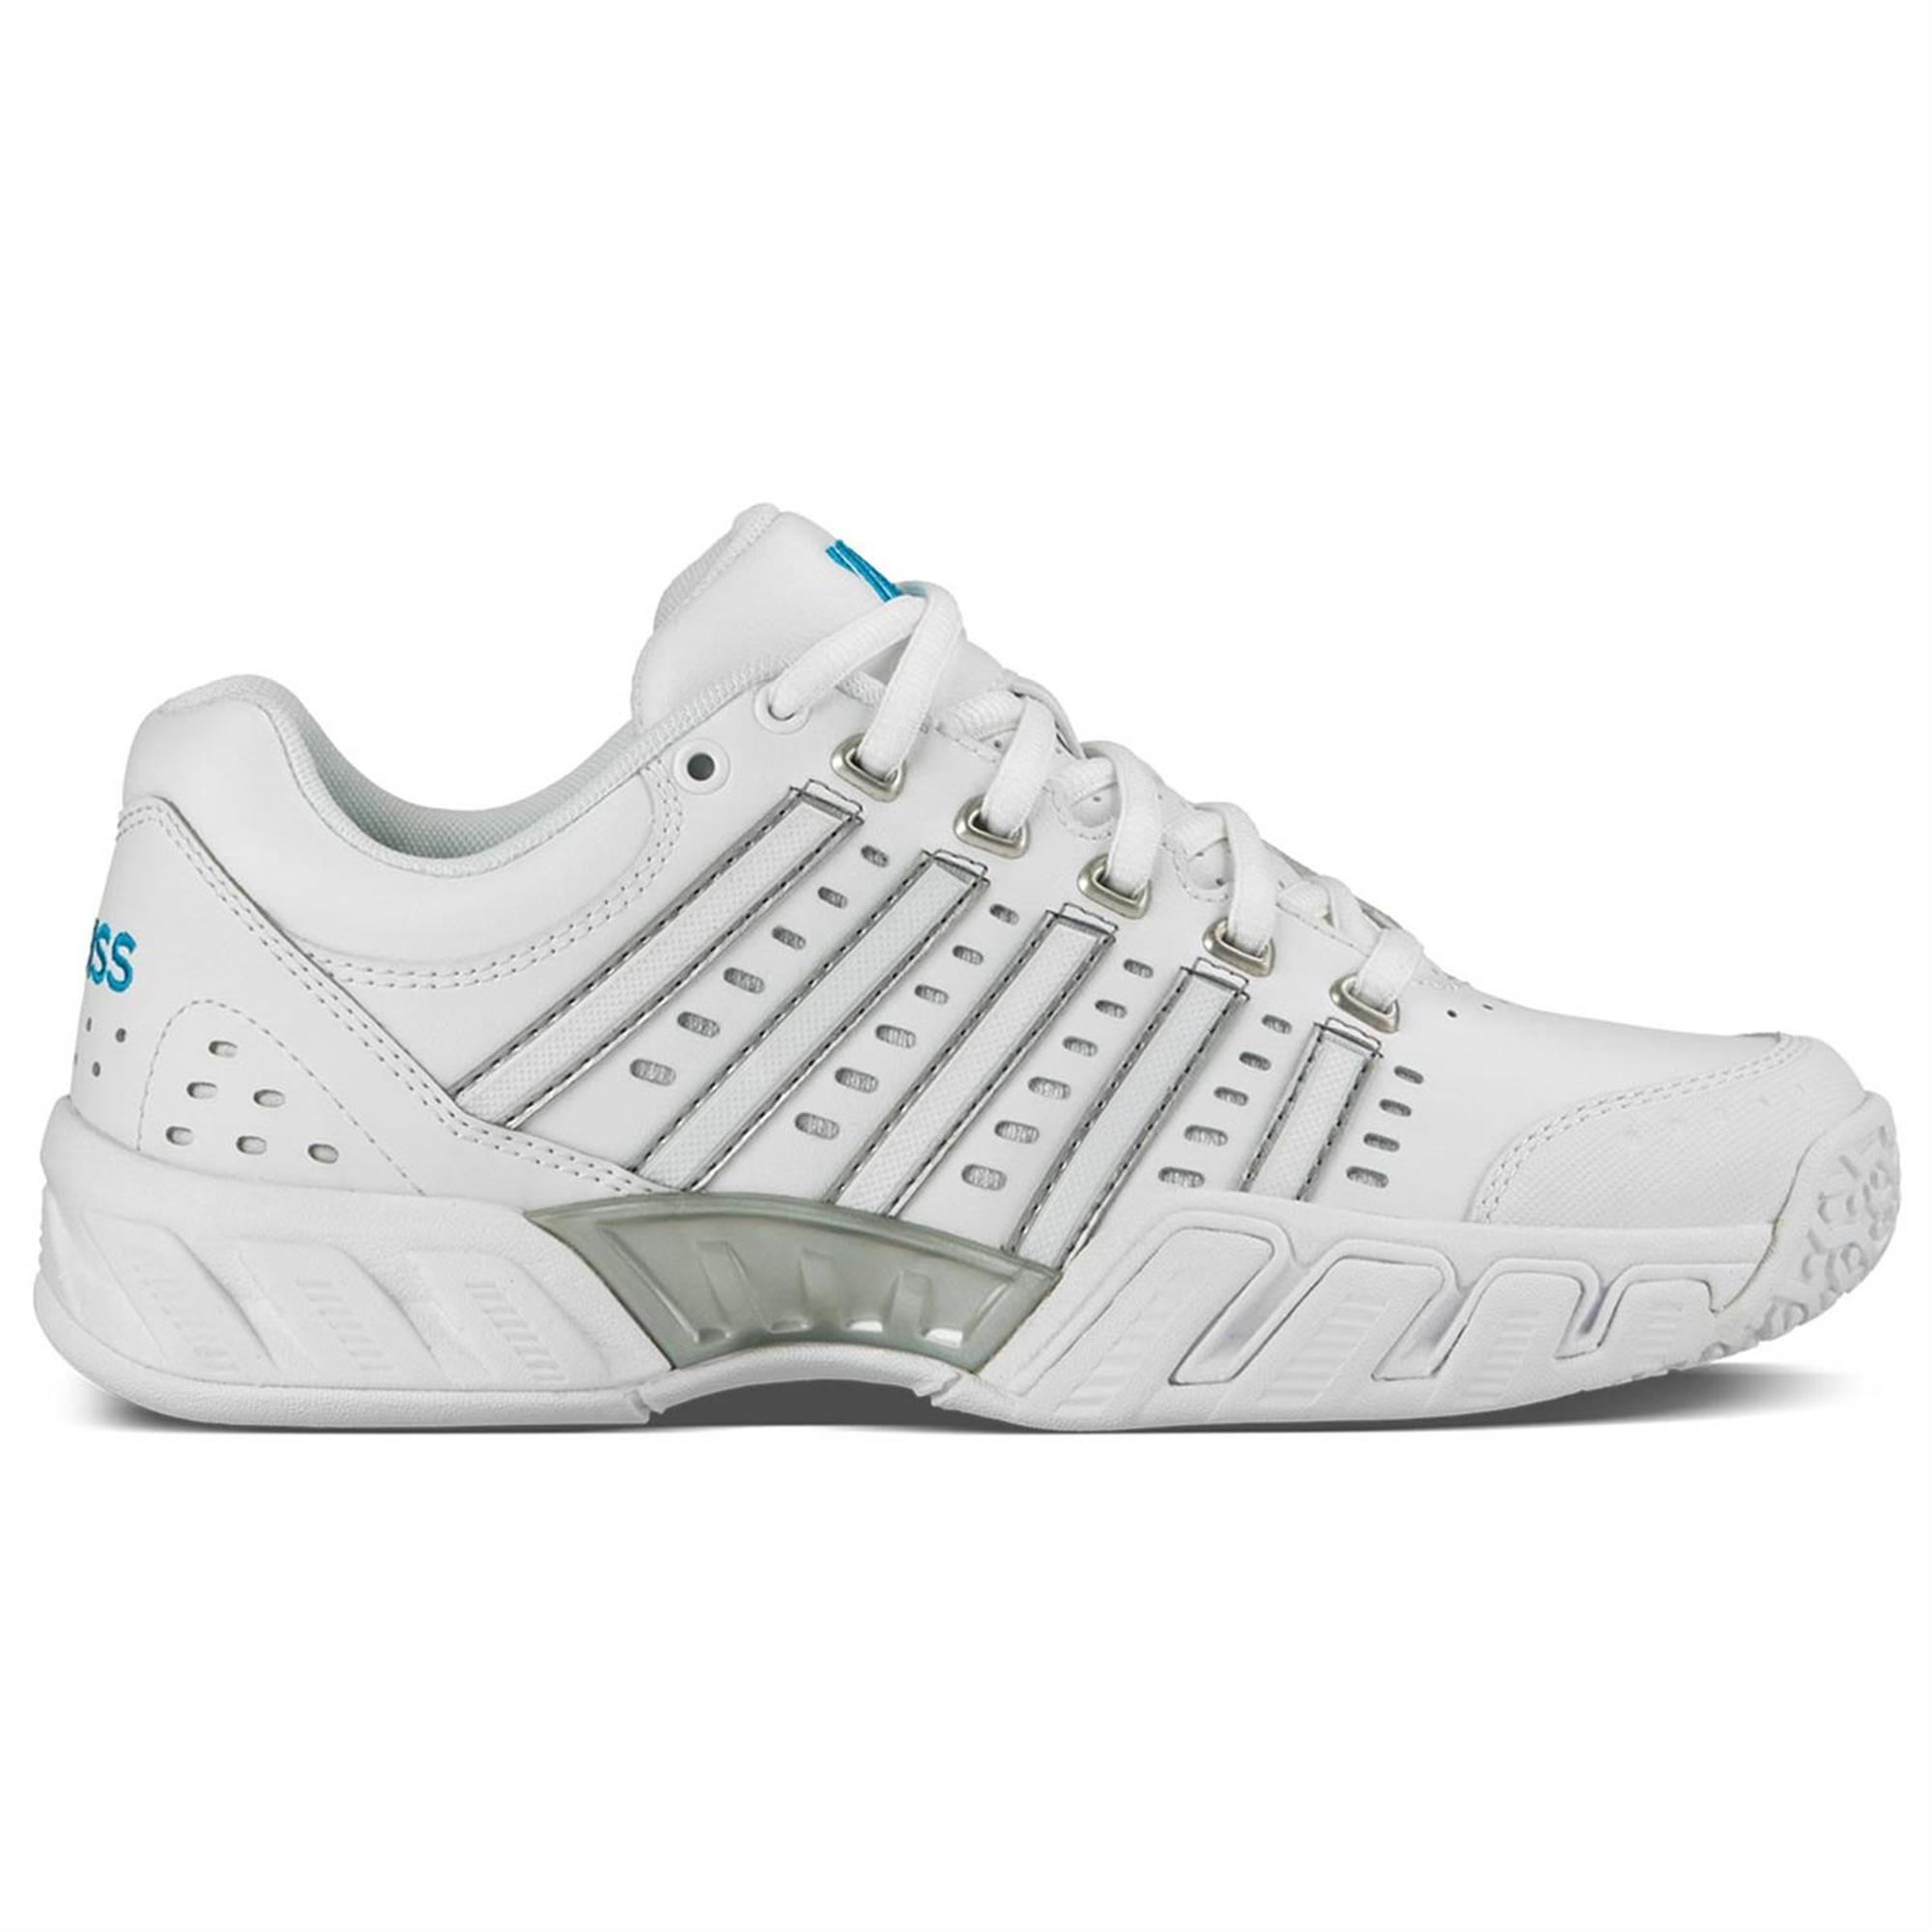 Omni Ltr Shoes K Womens Bigshot Light Court Tennis White Swiss OTwkuPXZi